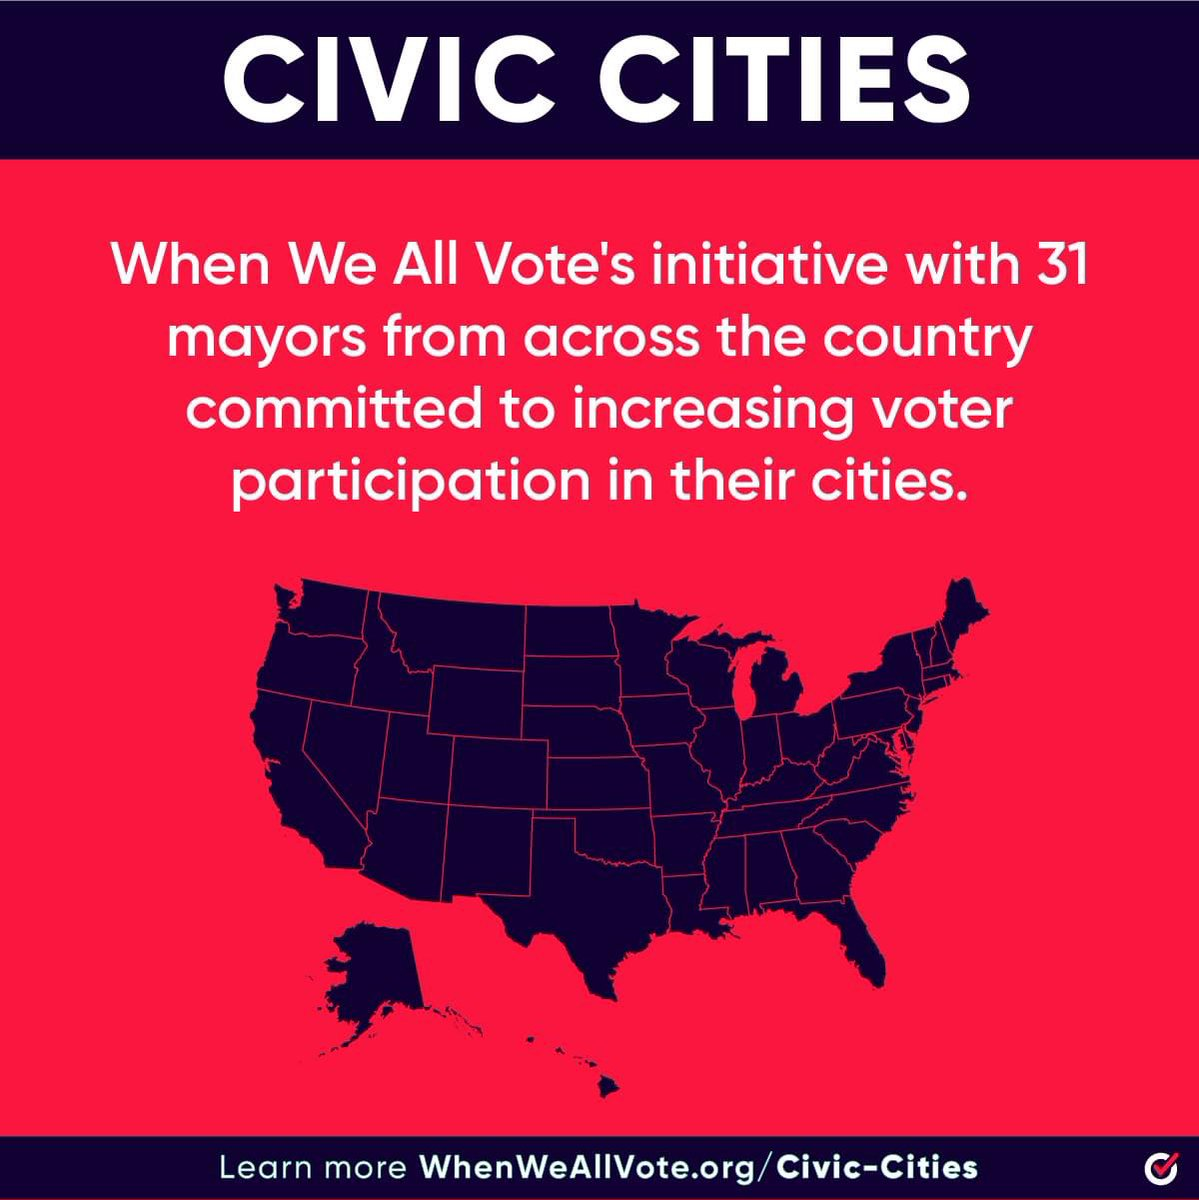 I am proud to be a founding member of #civiccities. Our country is stronger #whenweallvote! @WhenWeAllVote